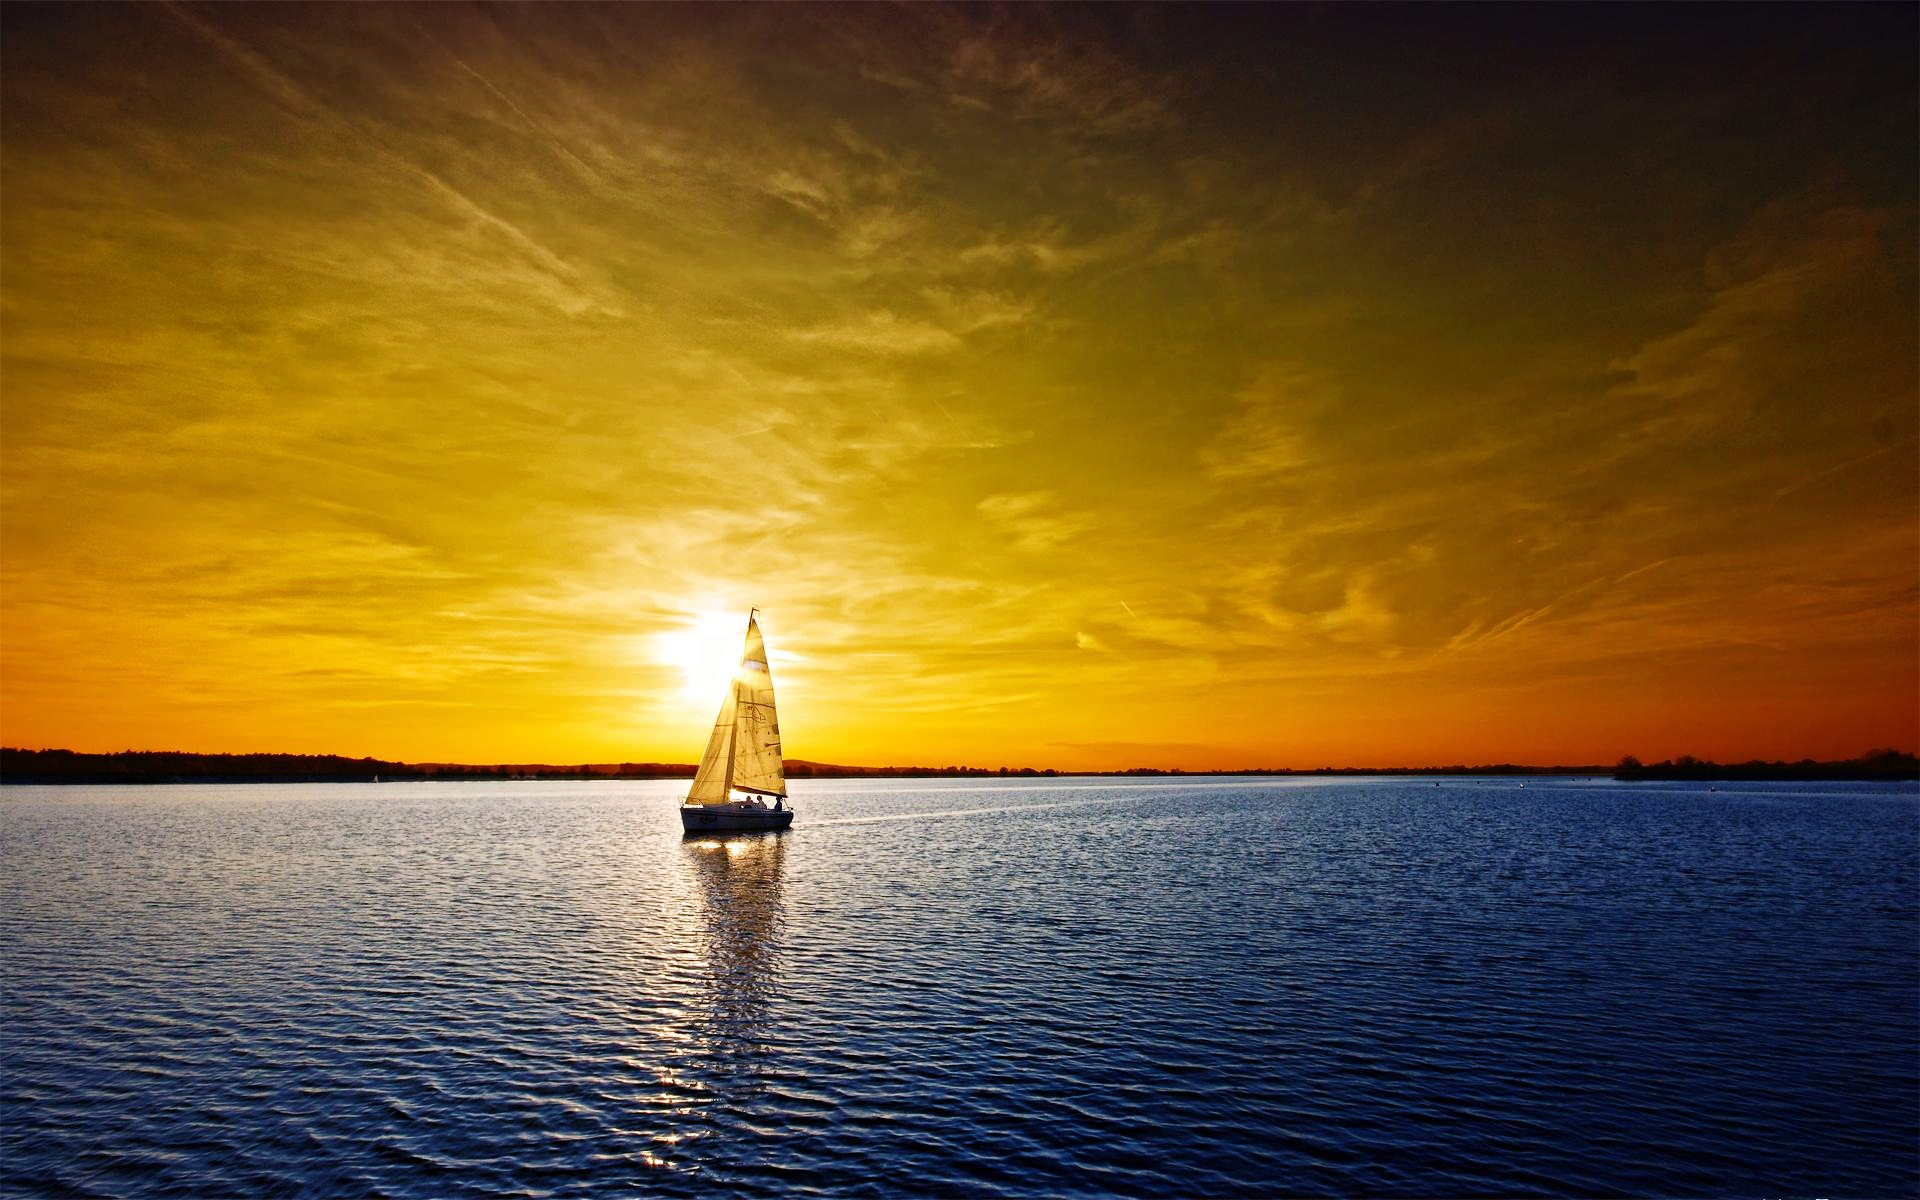 Top 6 Most Beautiful Sunsets Ever - LogoMyWay Blog